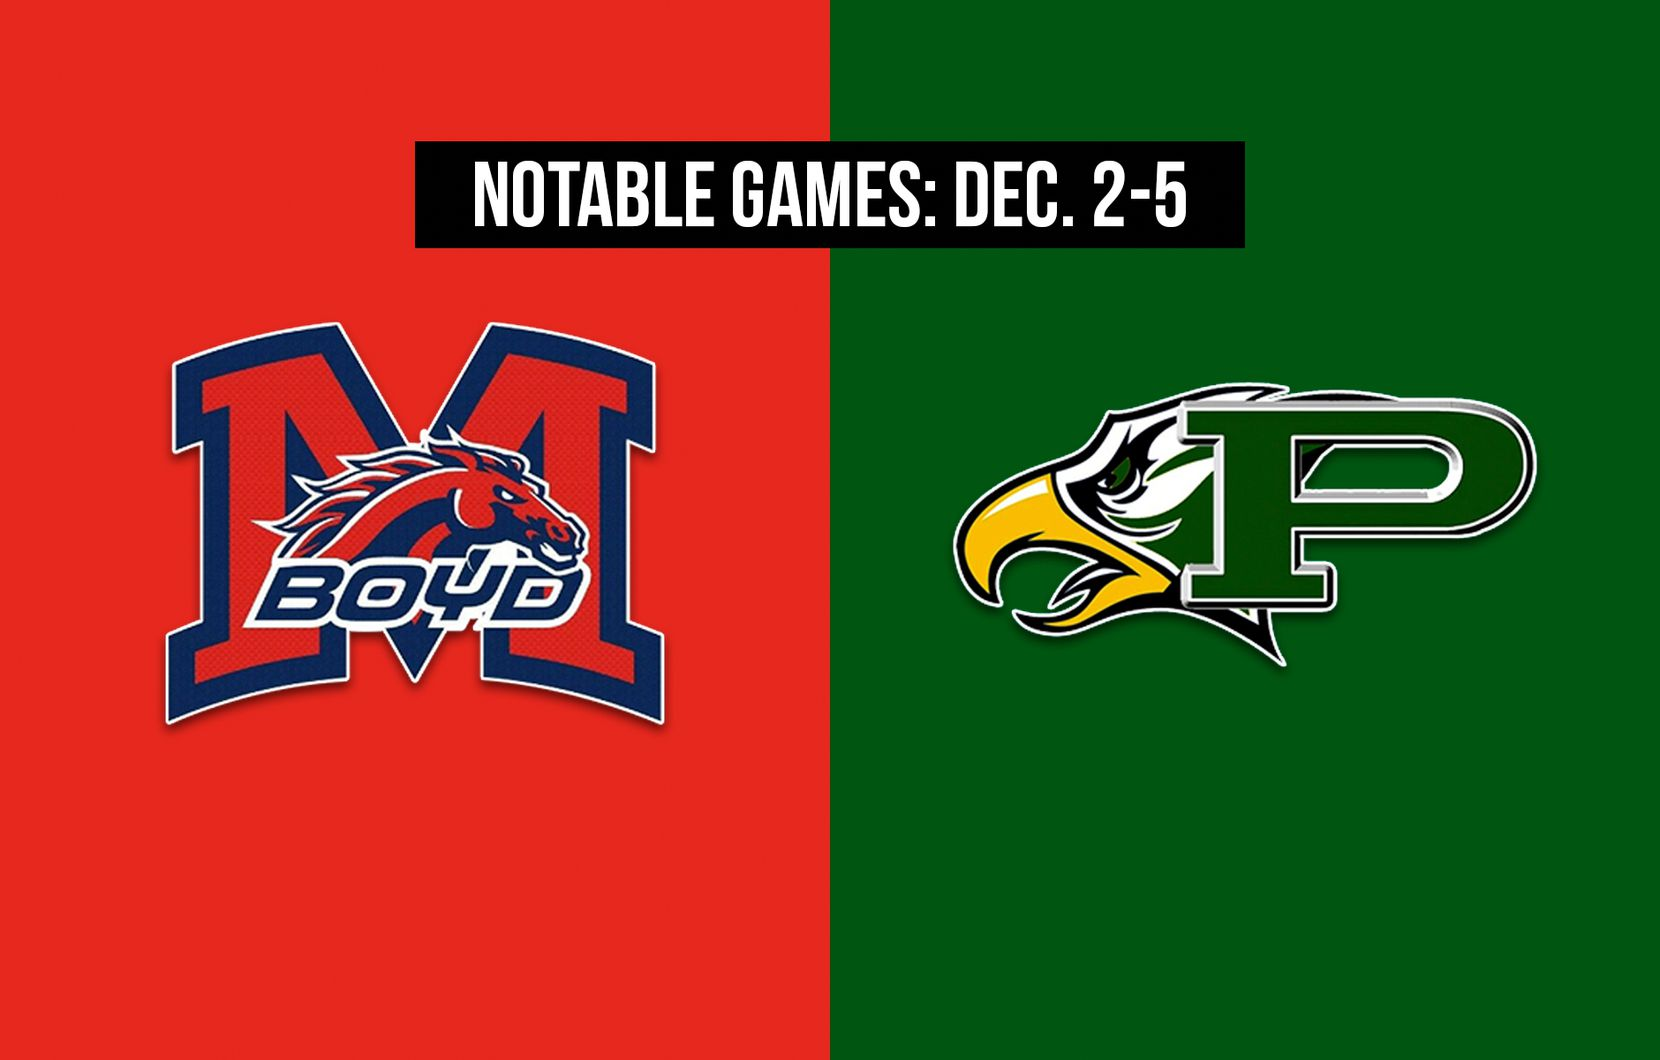 Notable games for the week of Dec. 2-5 of the 2020 season: McKinney Boyd vs. Prosper.